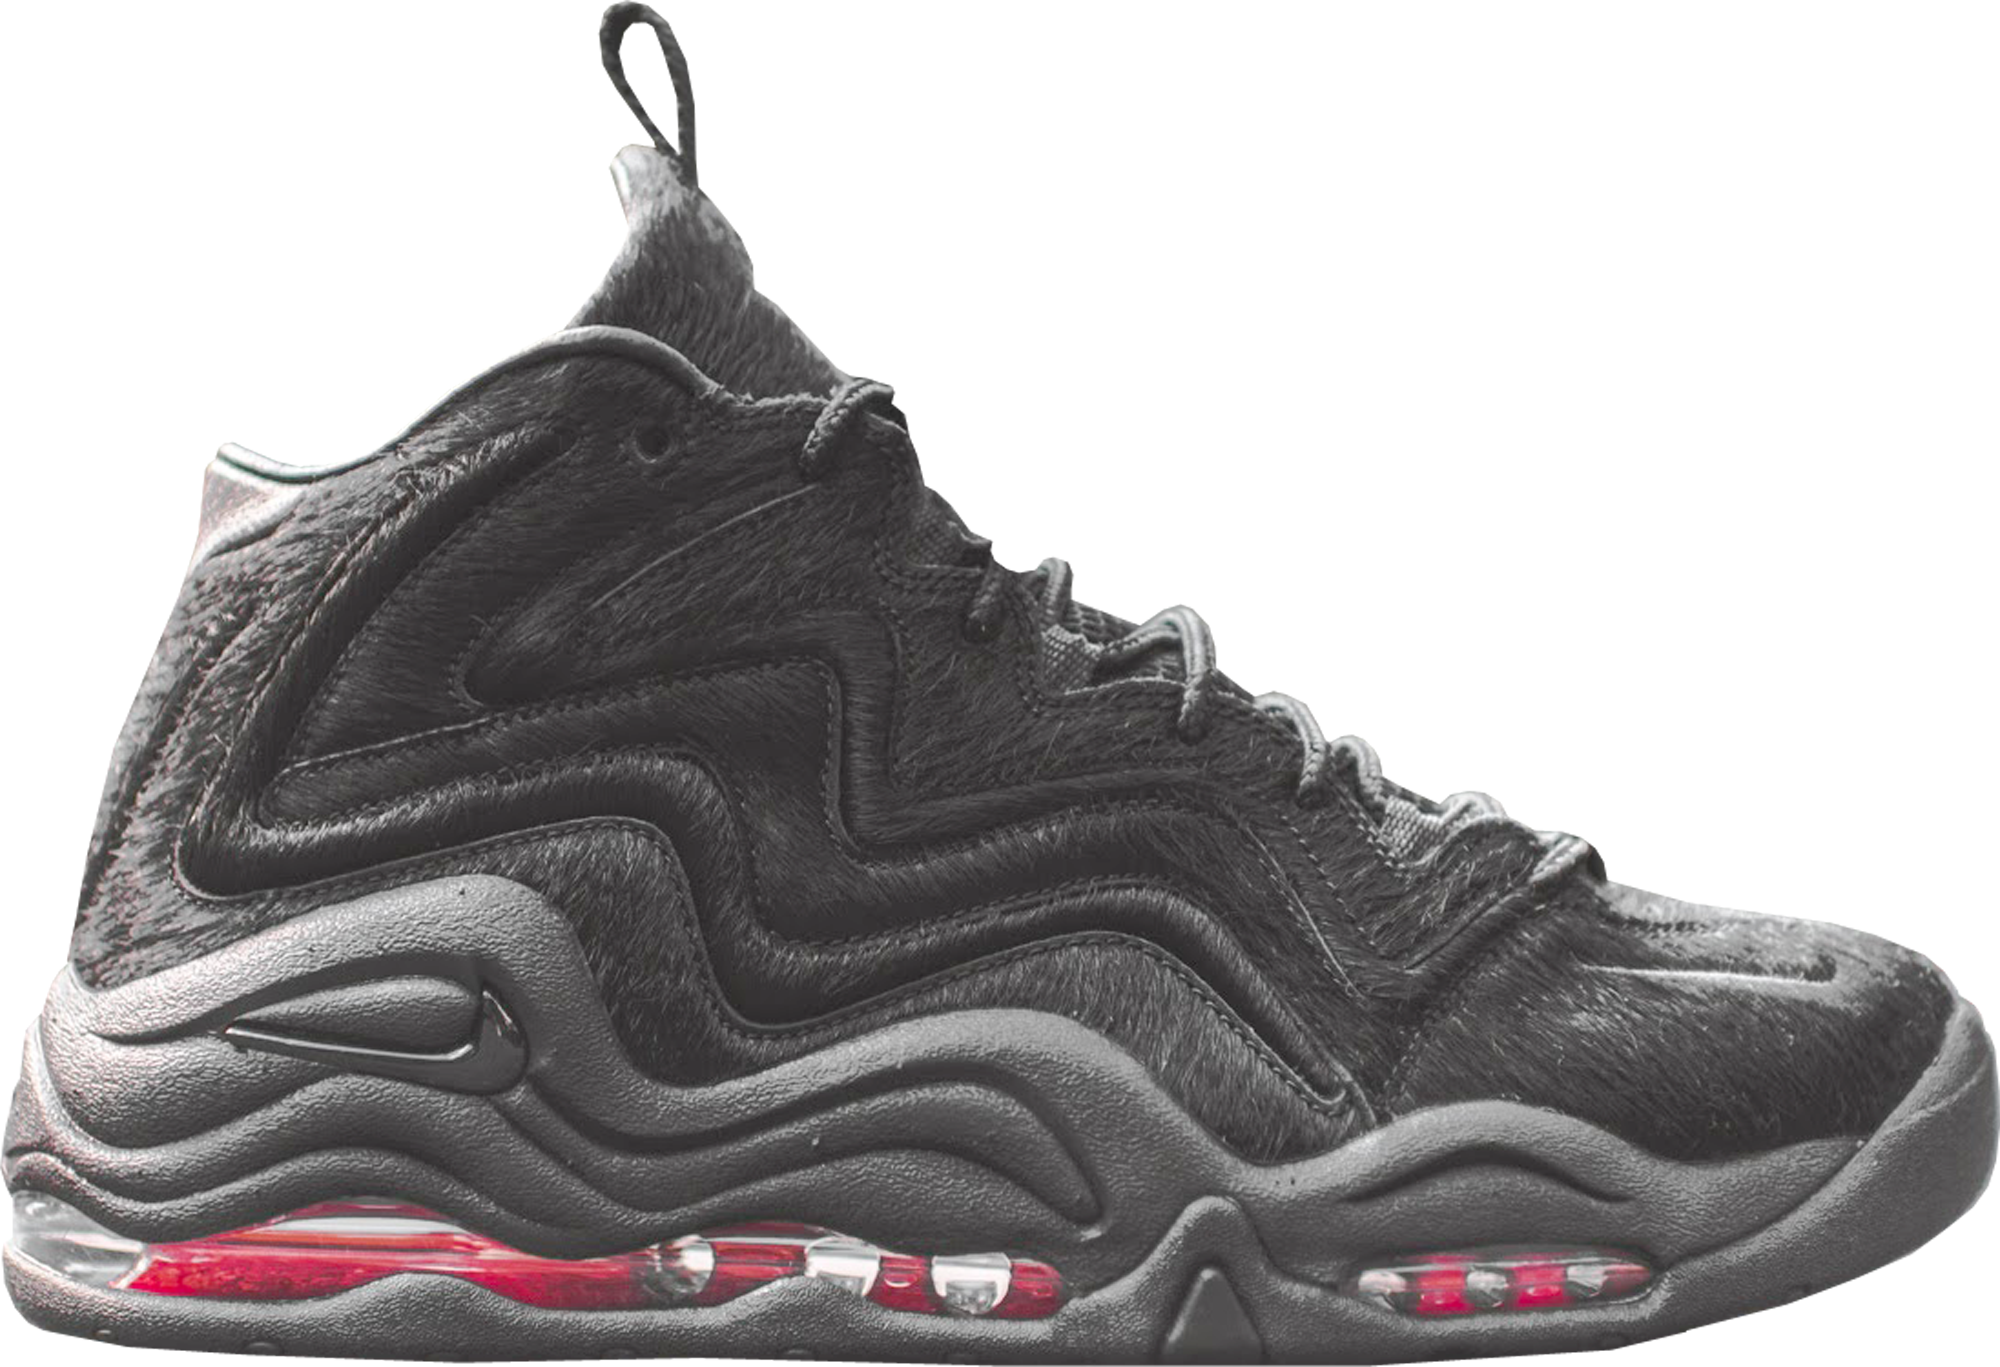 Air Pippen 1 Kith Black Pony Hair